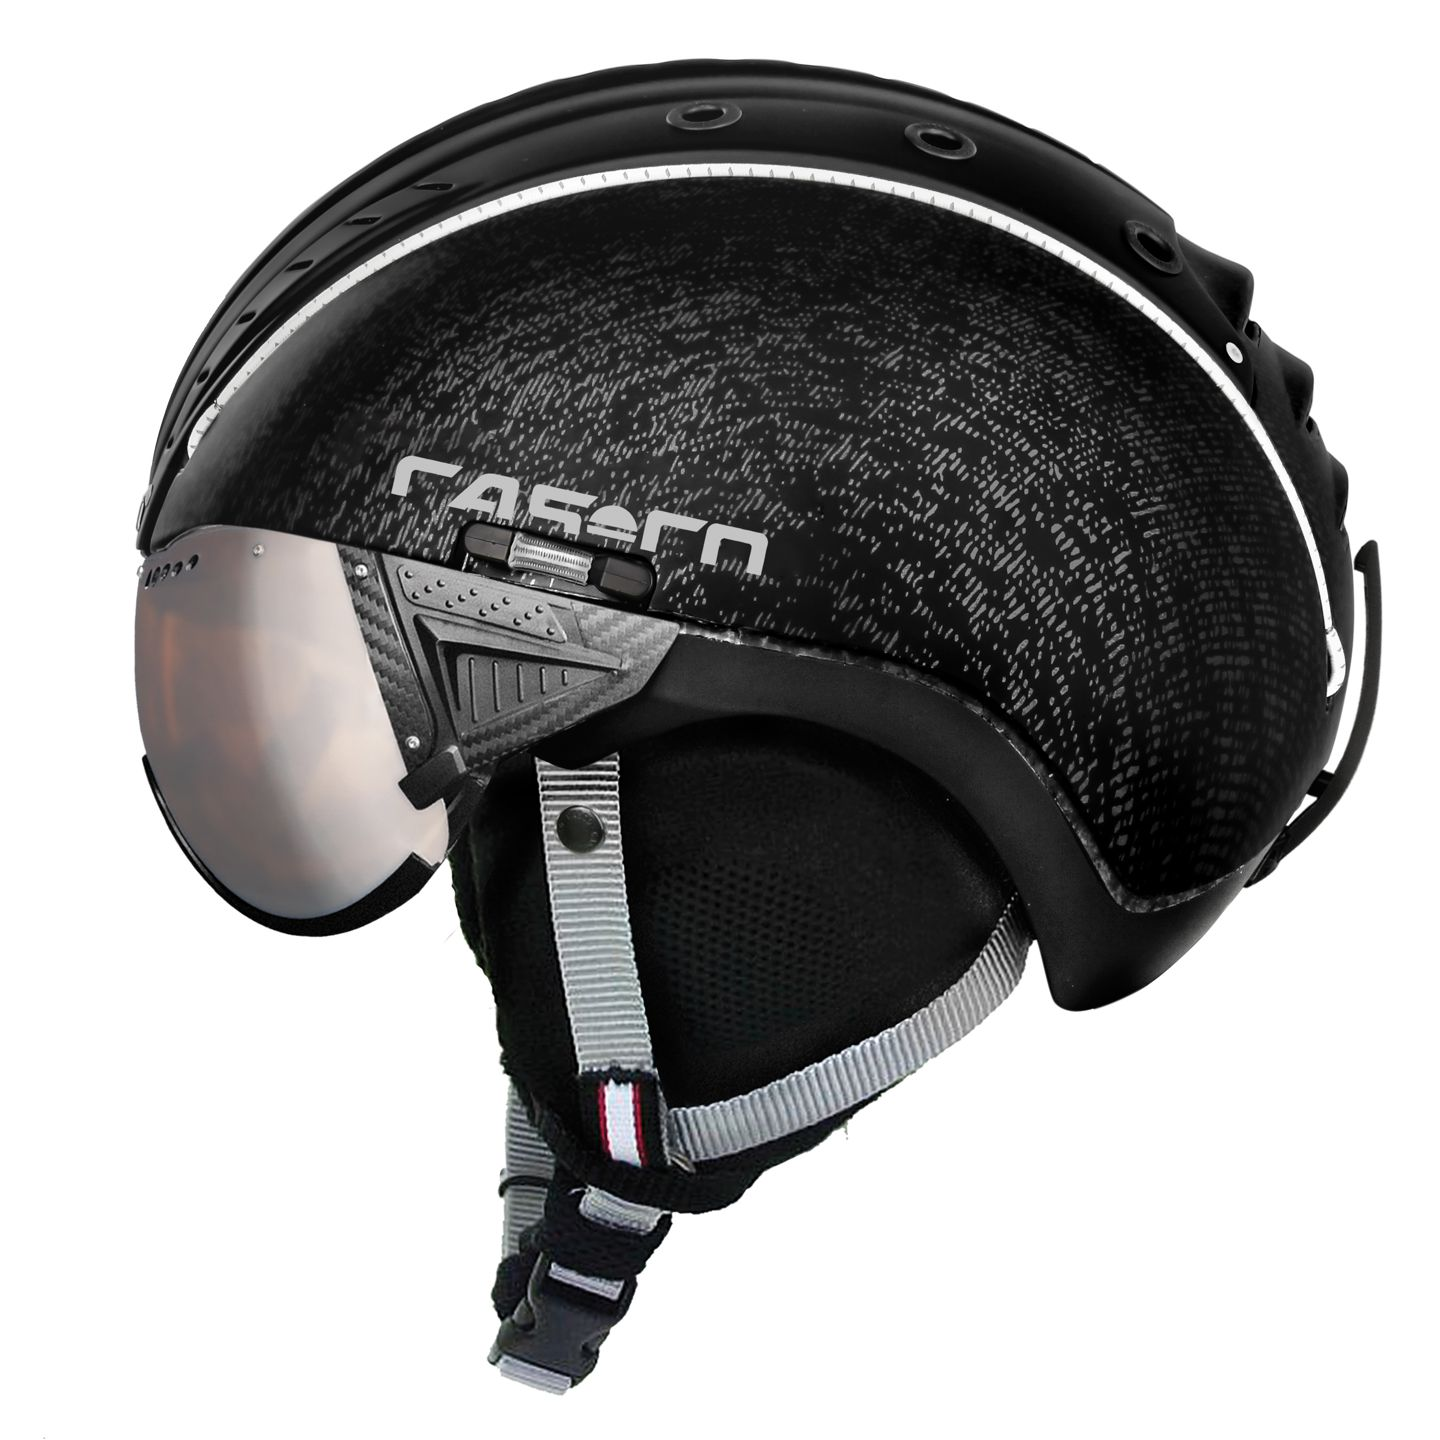 Casco SP-2 Visier fekete